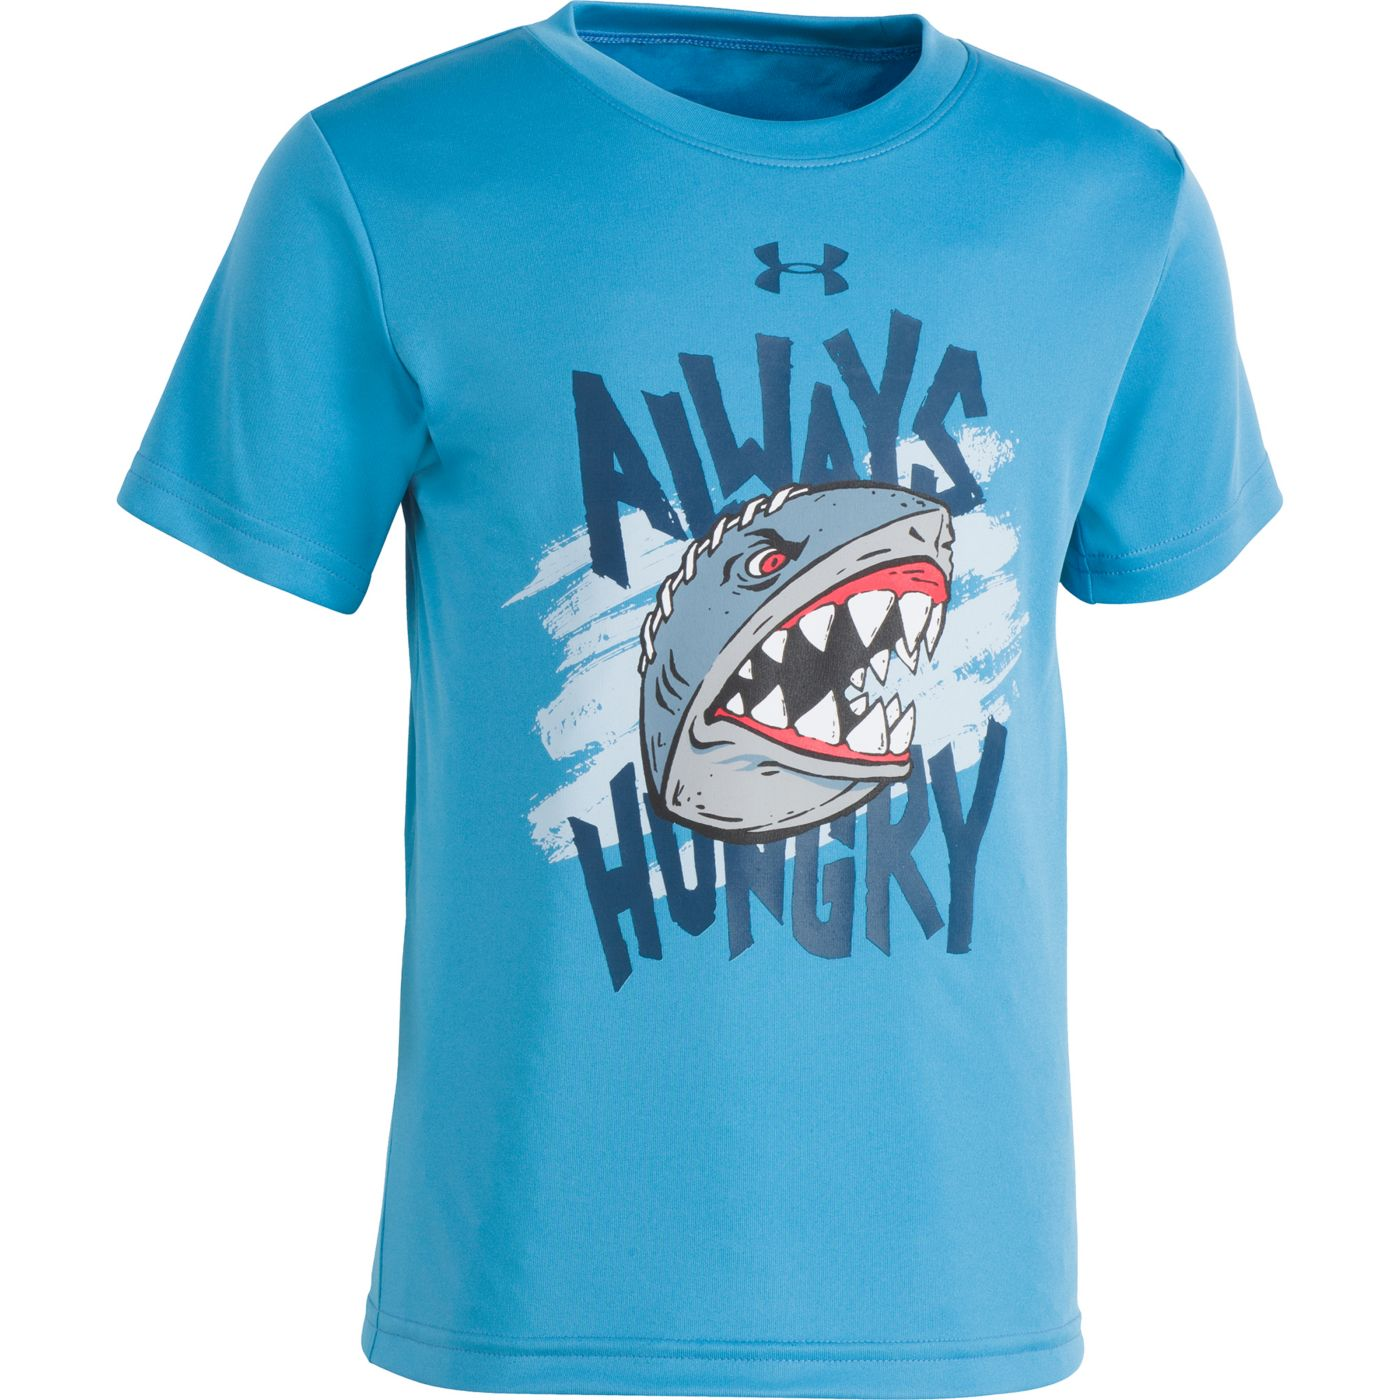 Under Armour Little Boys' Always Hungry Graphic T-Shirt